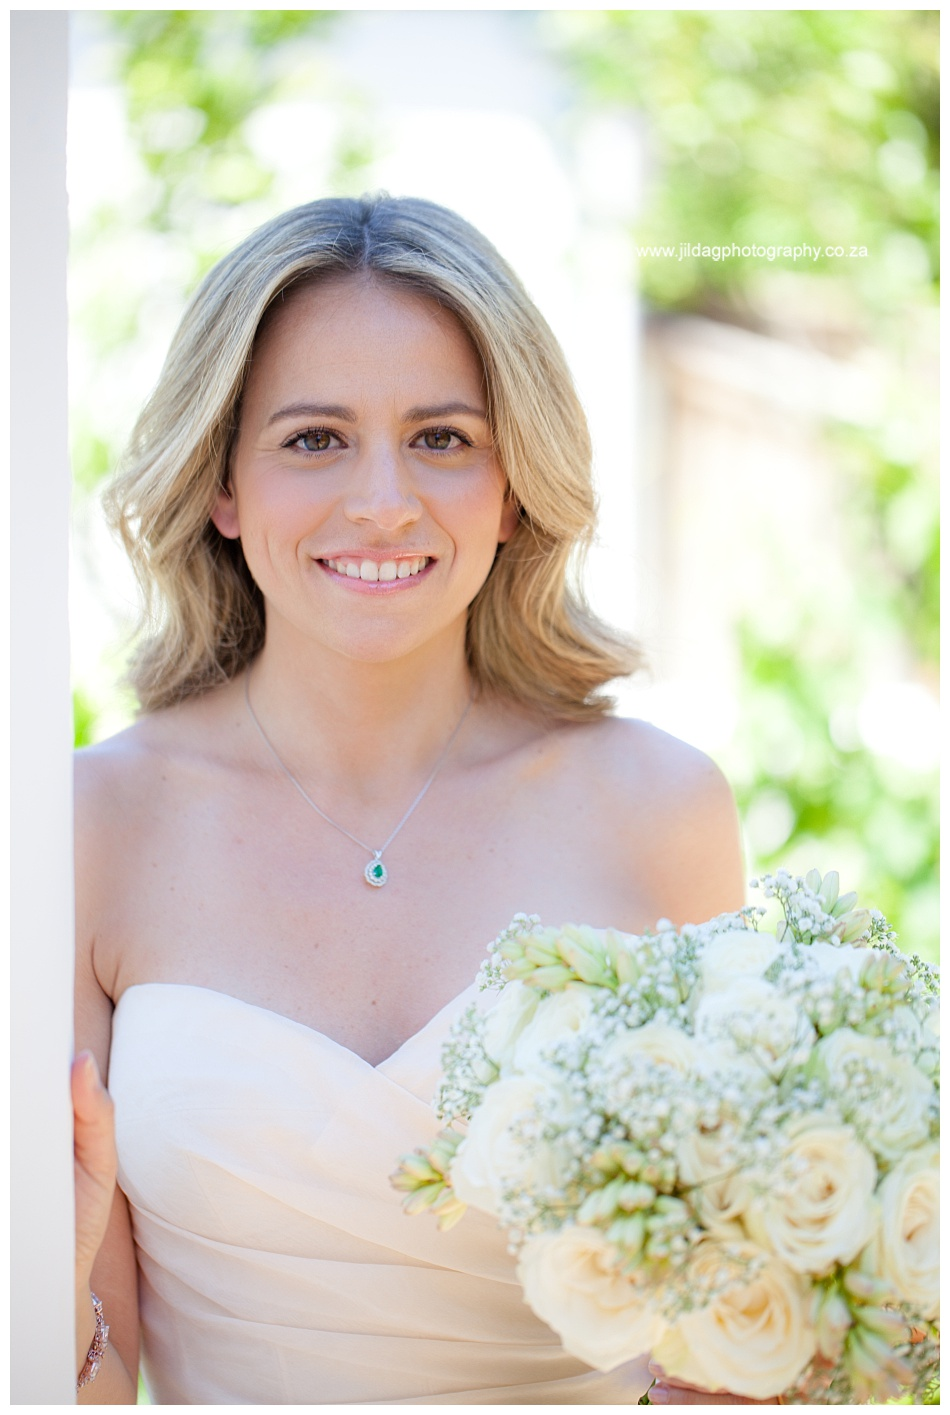 Jilda-G-Photography-Boschendal-wedding_1124